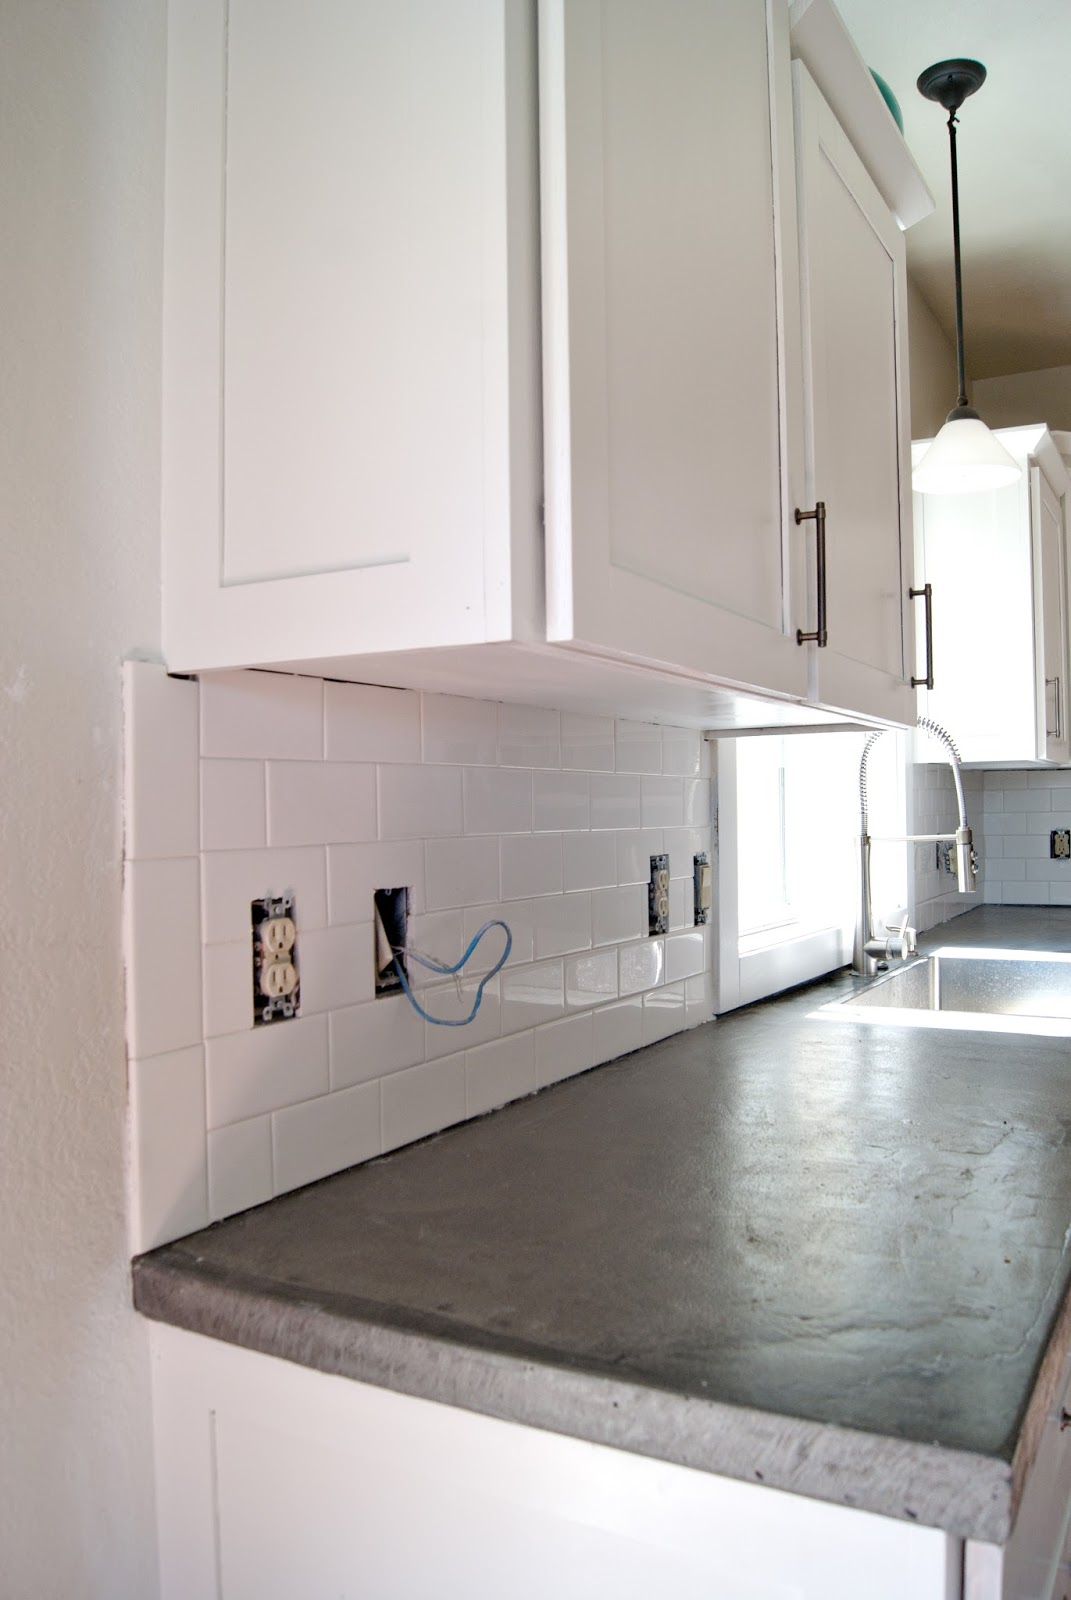 Subway Tile Installation Tips On Grouting With Fusion Pro Averie